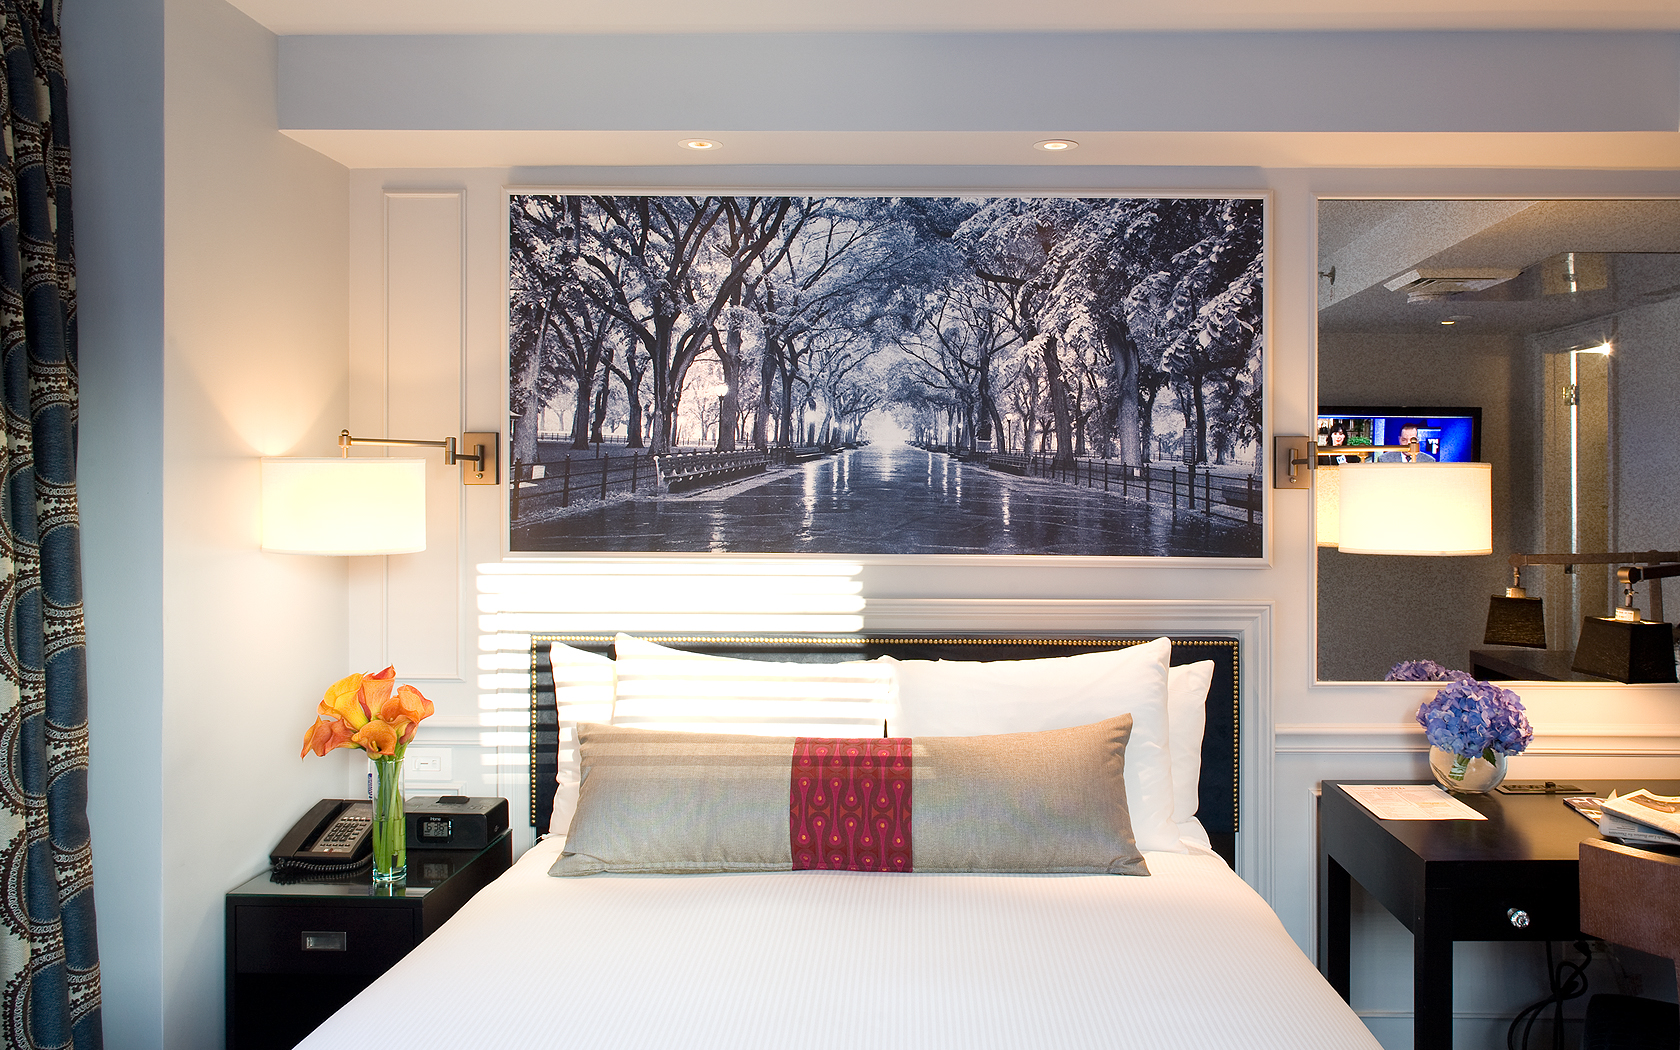 Deluxe Room bed with pillows Deluxe Room. Flatiron NYC Hotel  New York City Accommodations   Roger New York